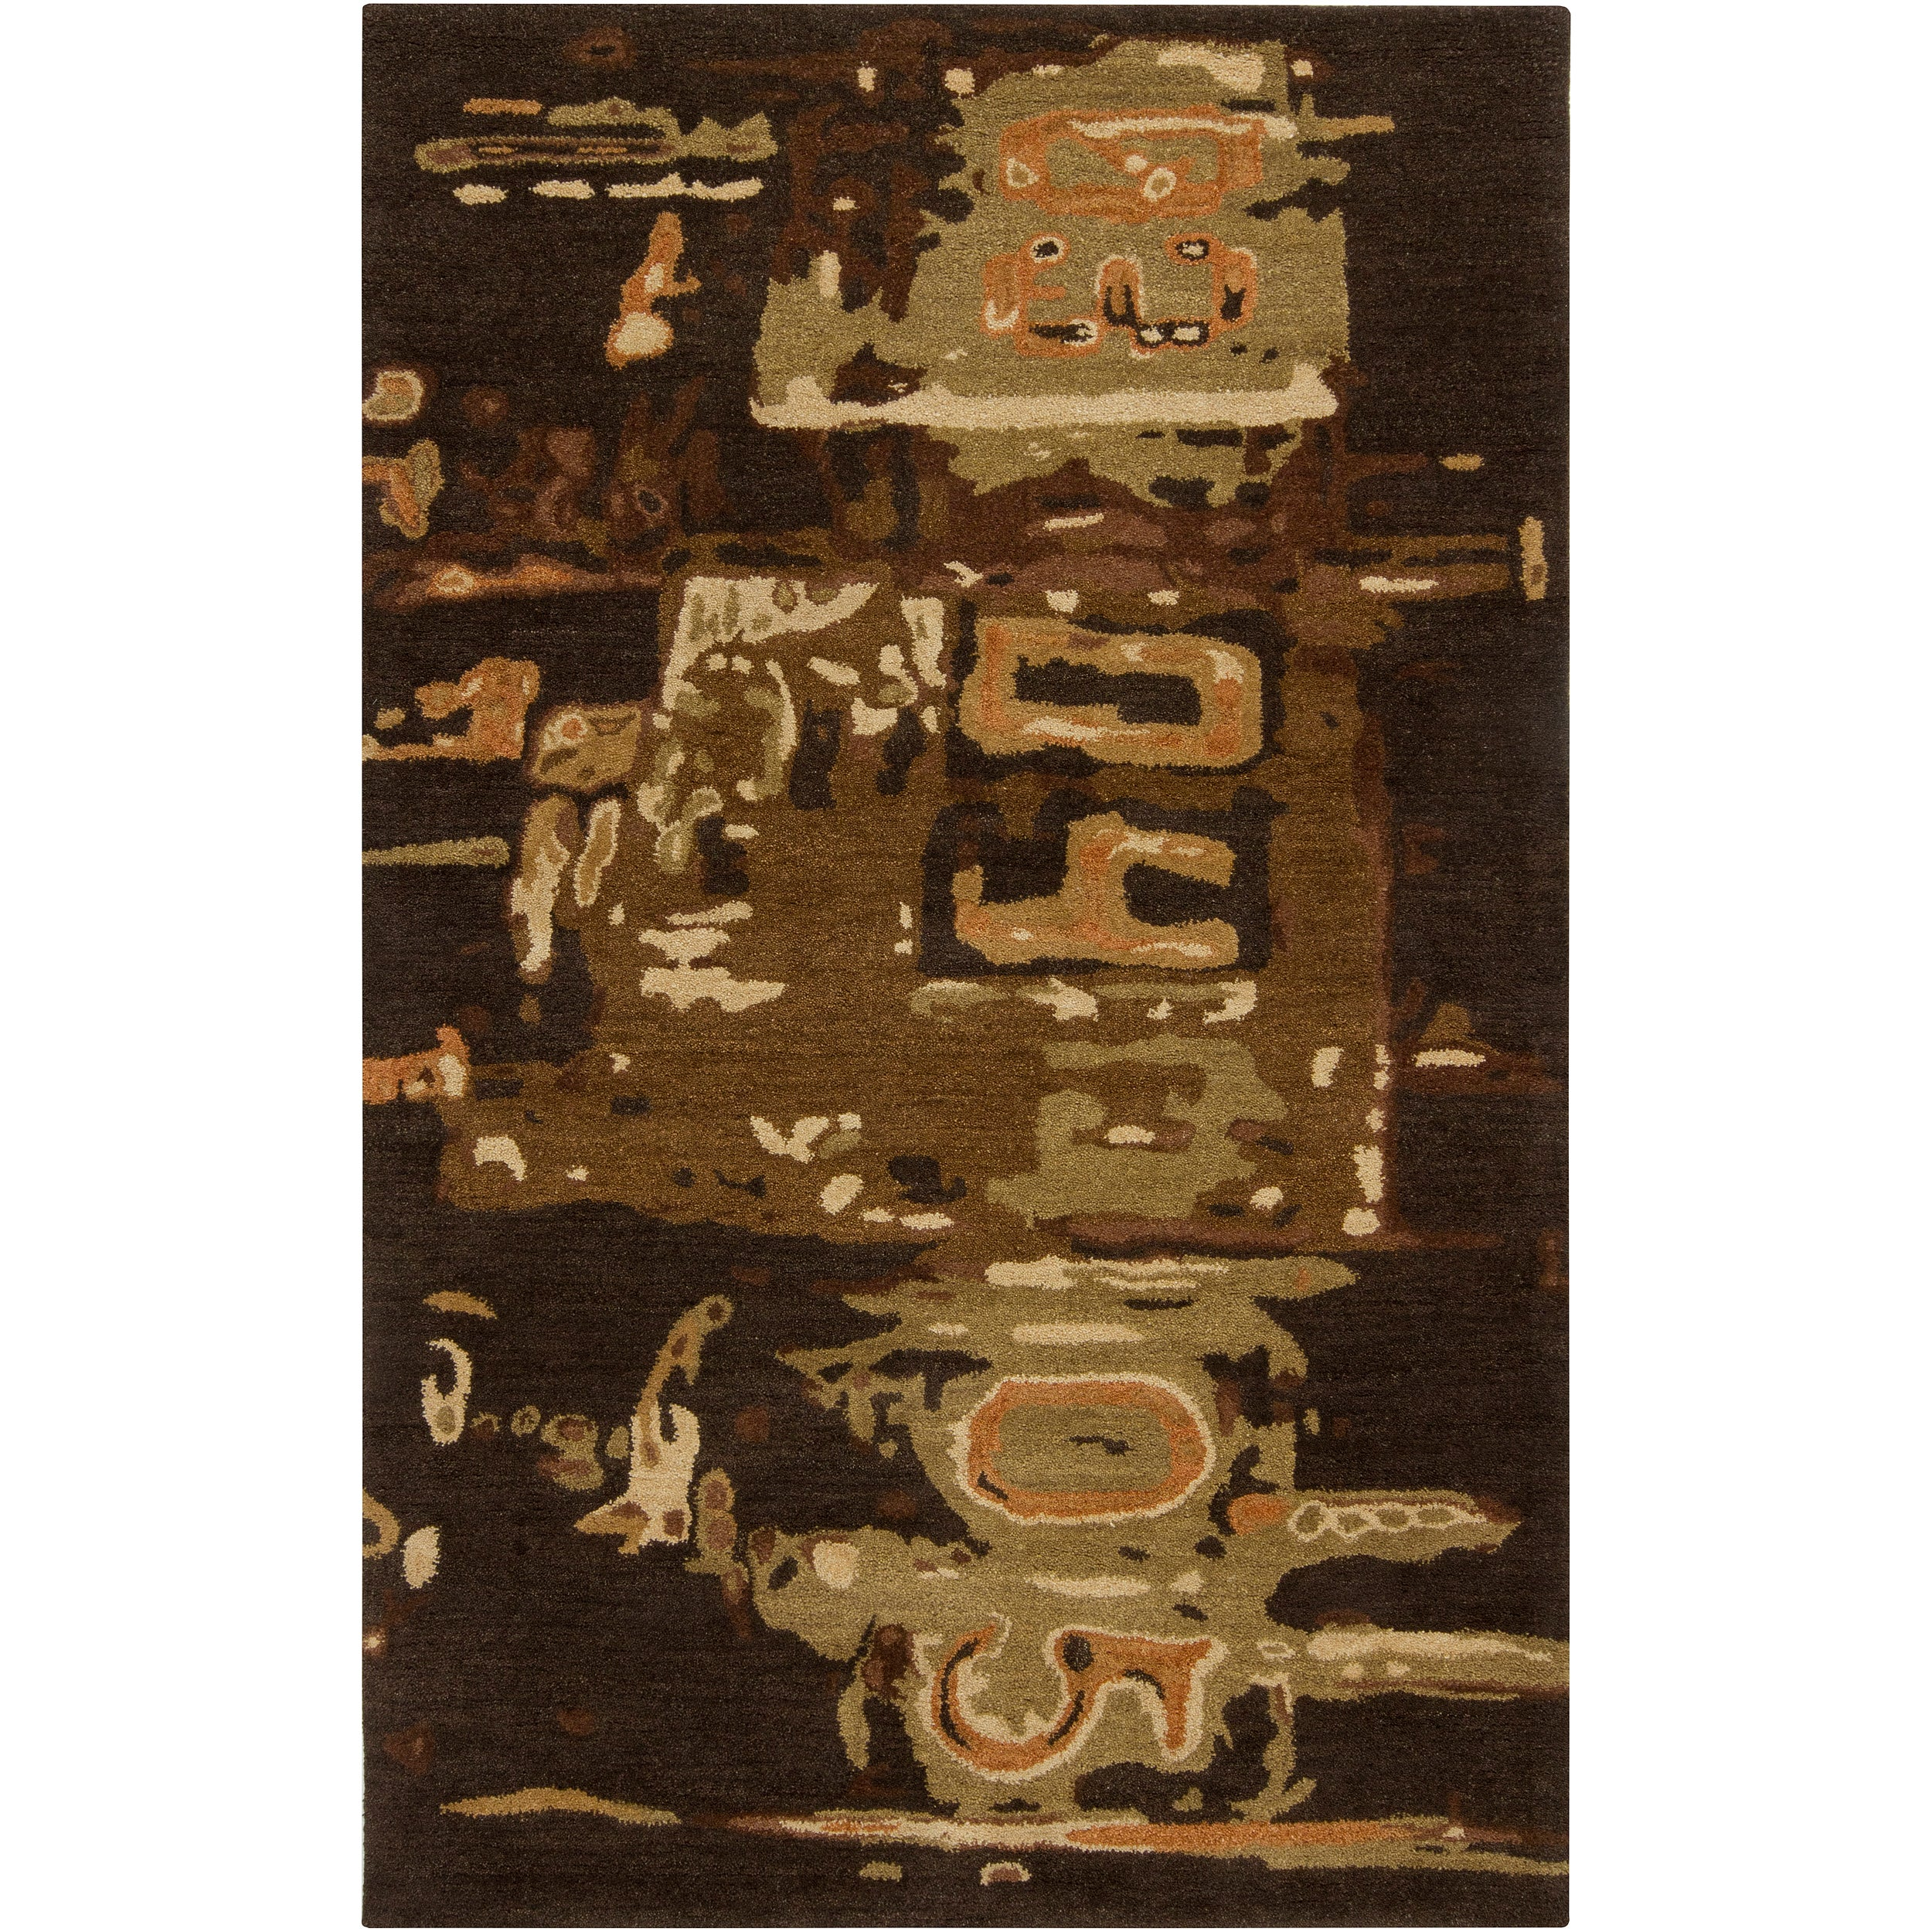 Hand-tufted Brown Rancick Abstract Pattern Wool Area Rug (9' x 13')